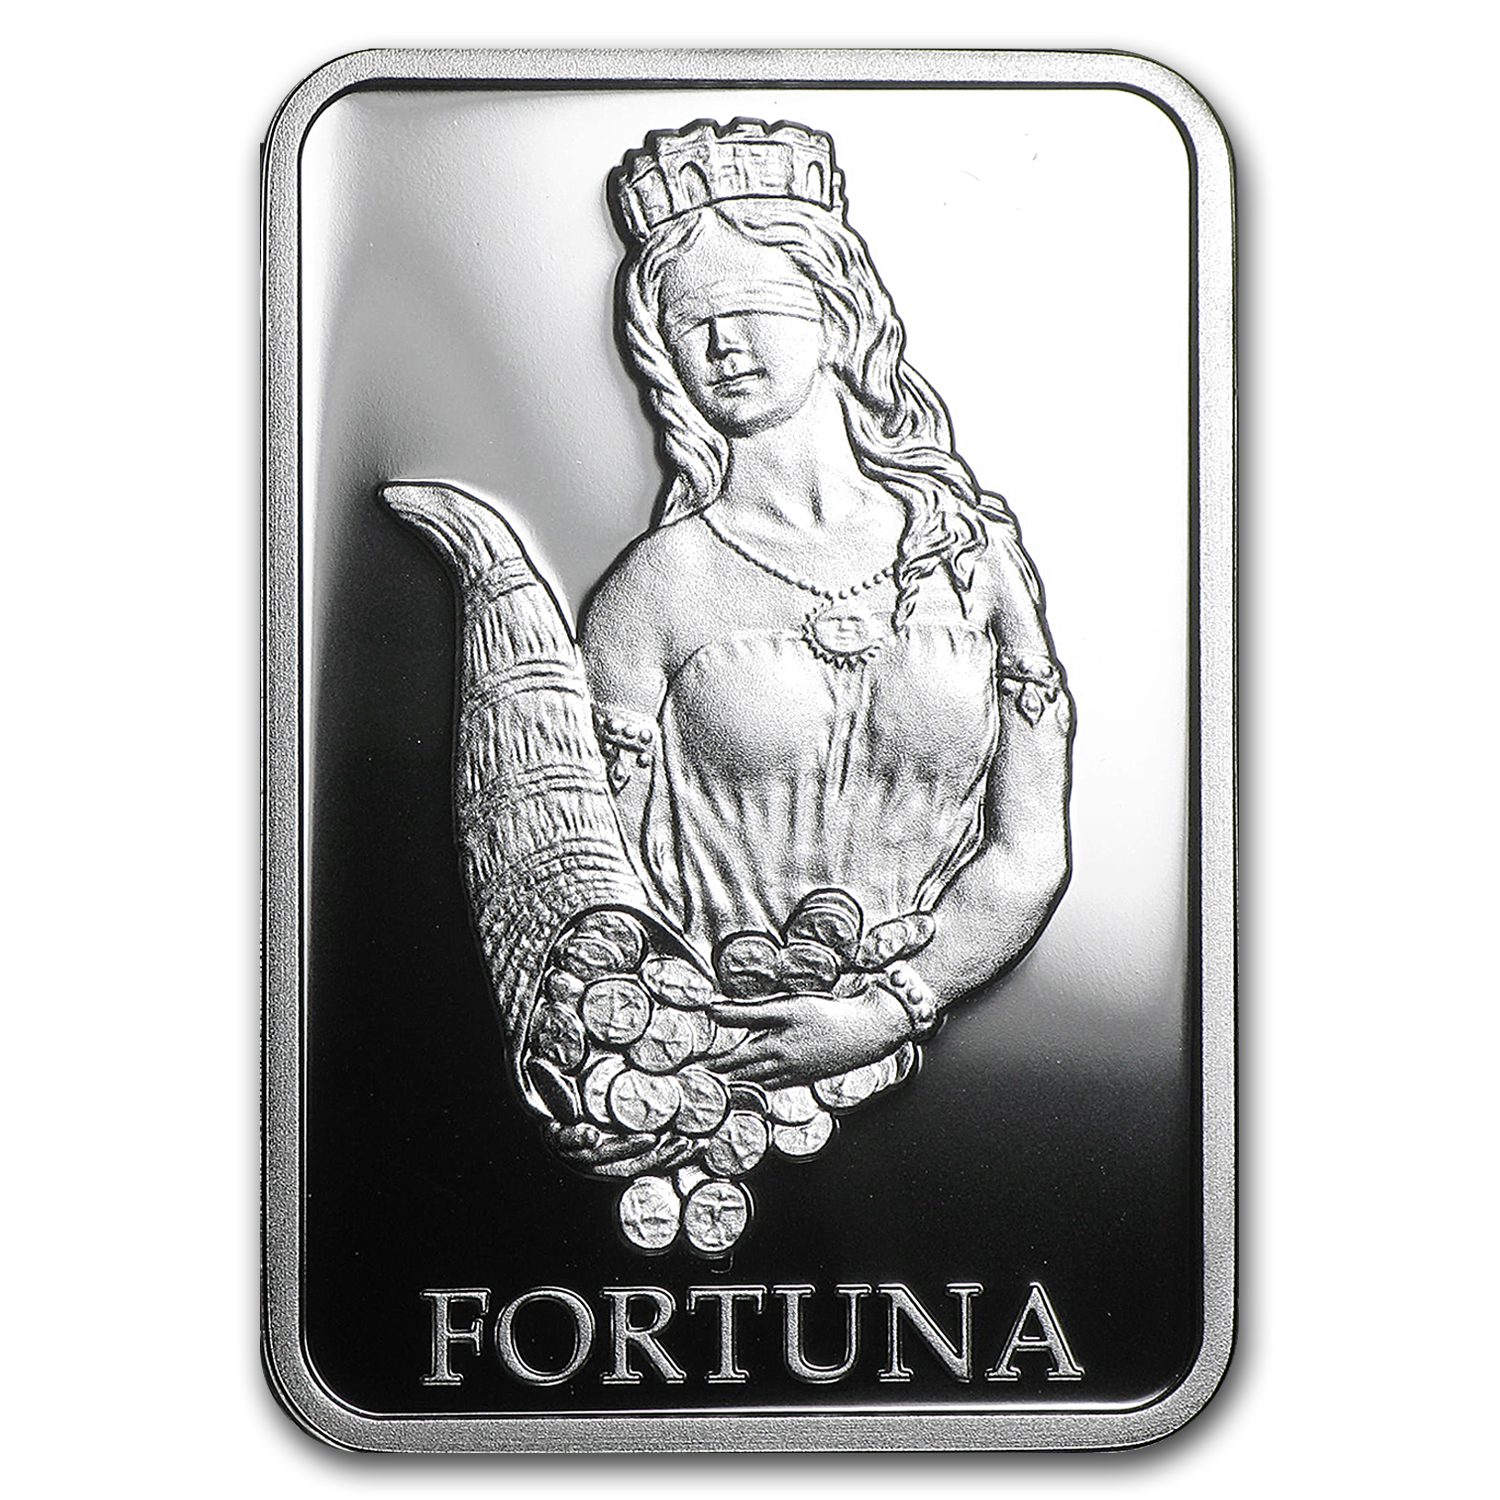 2015 Niue Silver Fortuna Goddess of Chance, Luck and Fate Proof